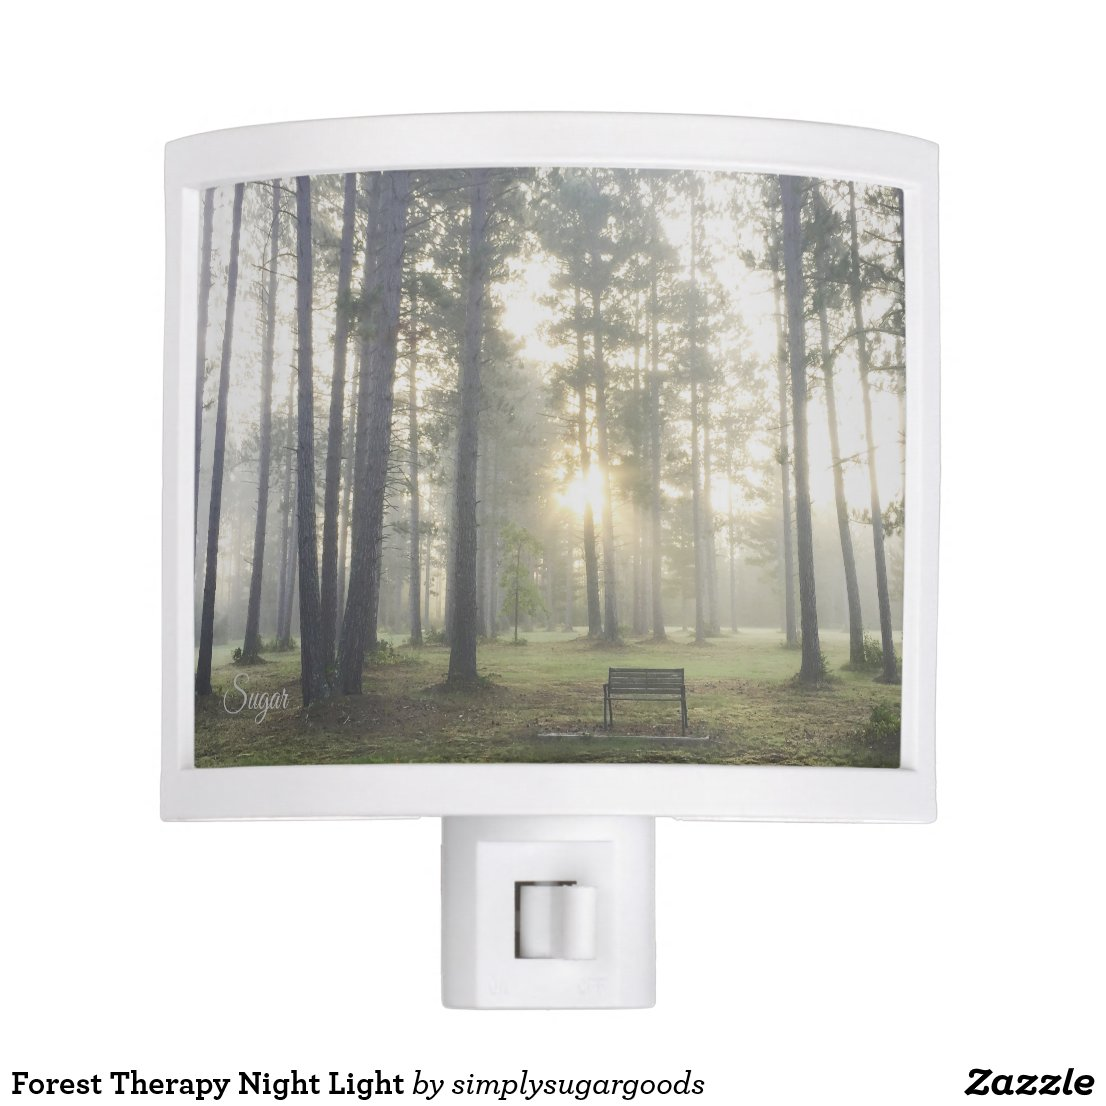 Forest Therapy Night Light